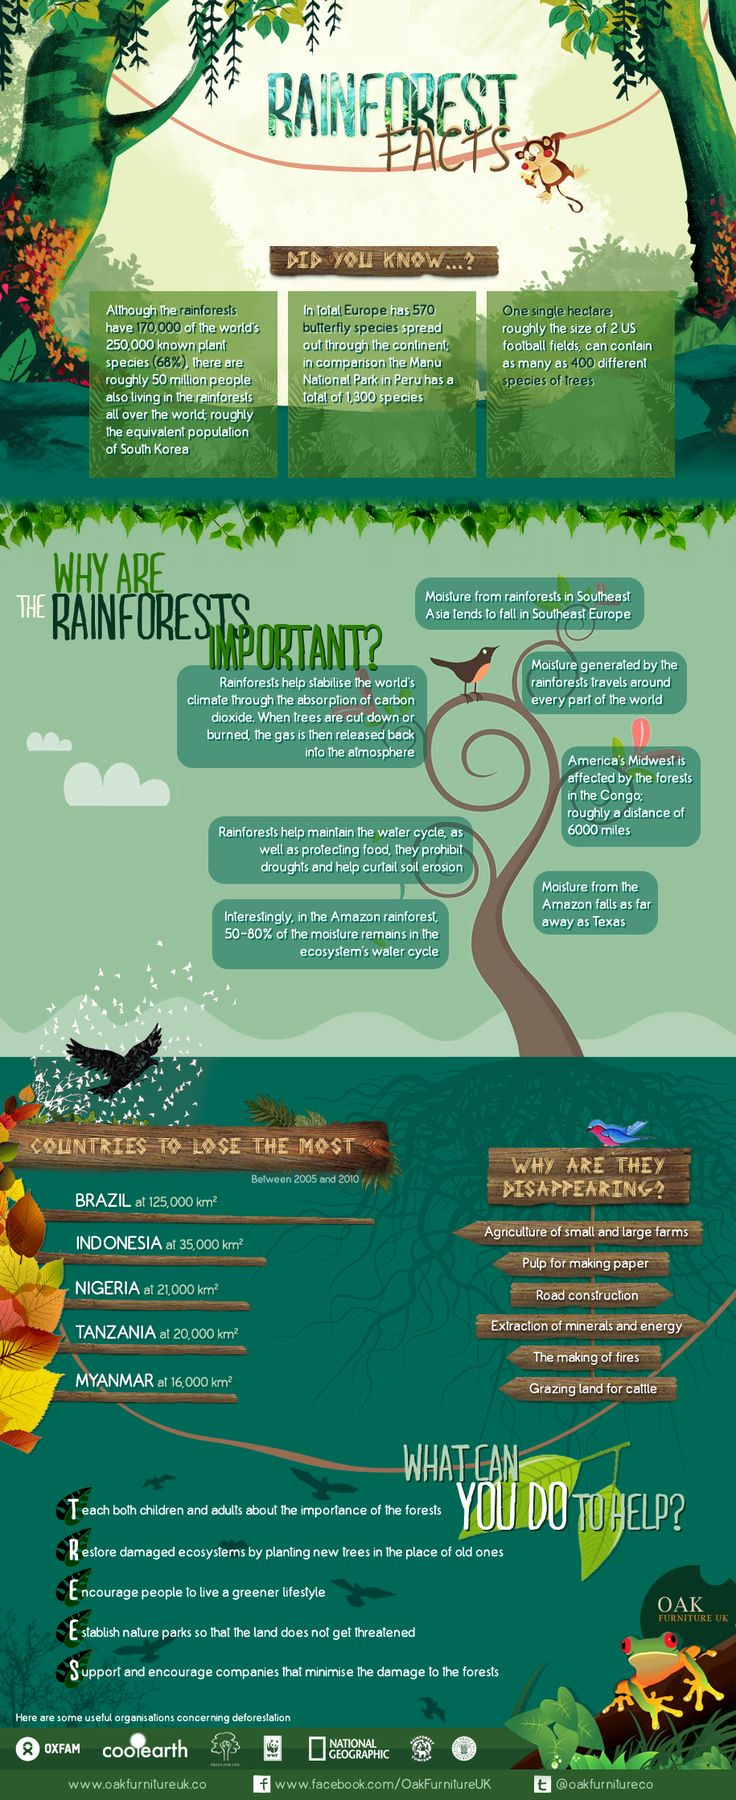 Rainforest Facts from Oak Furniture UK: http://www.greenerideal.com/science/0423-rainforest-facts-infographic/ #rainforest